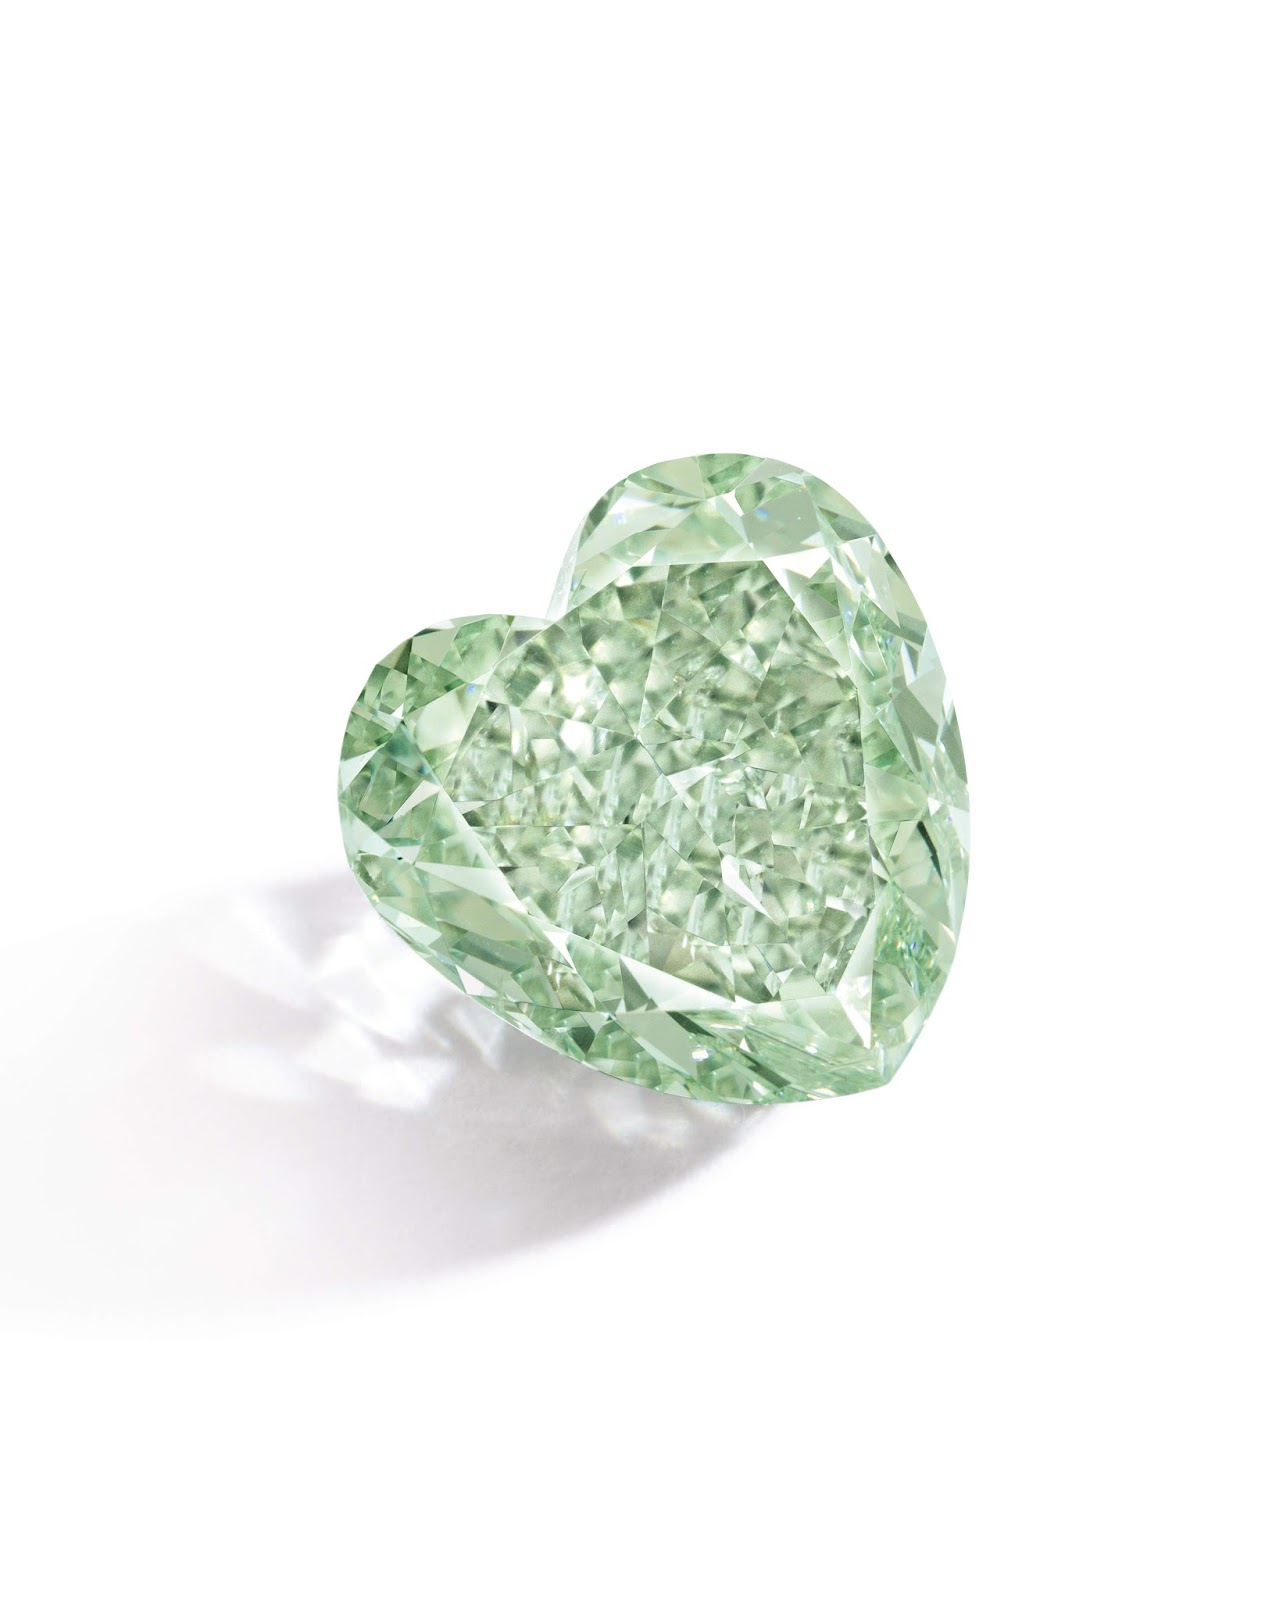 photo green isolated diamond illustration stock shutterstock on image white